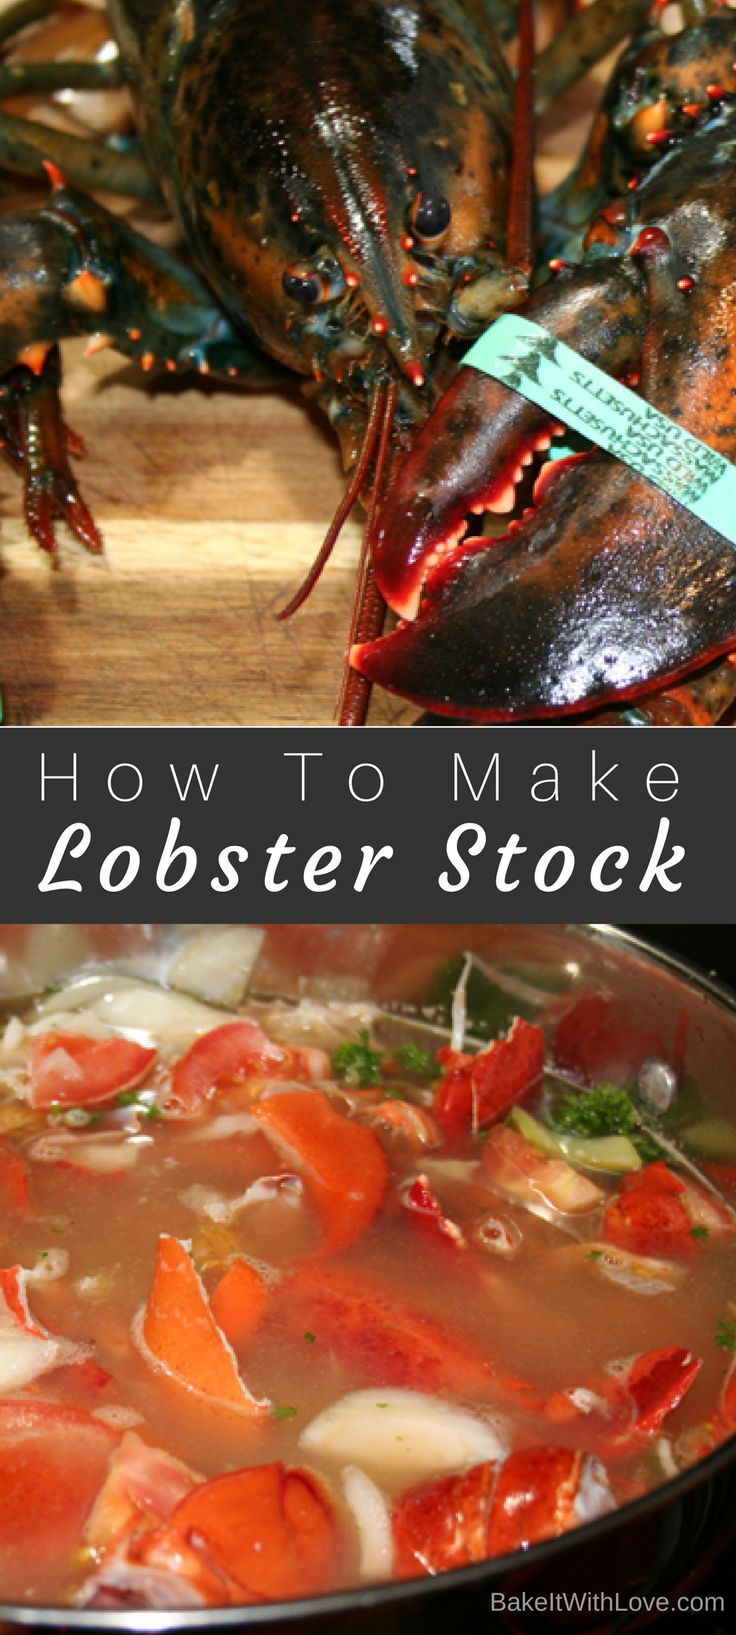 A super easy walk through on How To Make Lobster Stock, which adds so much to your amazing seafood dishes like the ones we will be using it for! Be sure to check out the related recipes that we made with this batch of lobster stock, the Hell's Kitchen Lobster Risotto (copycat recipe) and Roasted Corn Lobster Chowder! BakeItWithLove.com | #howto #lobsterstock #lobstershells #seafoodstock #homemade